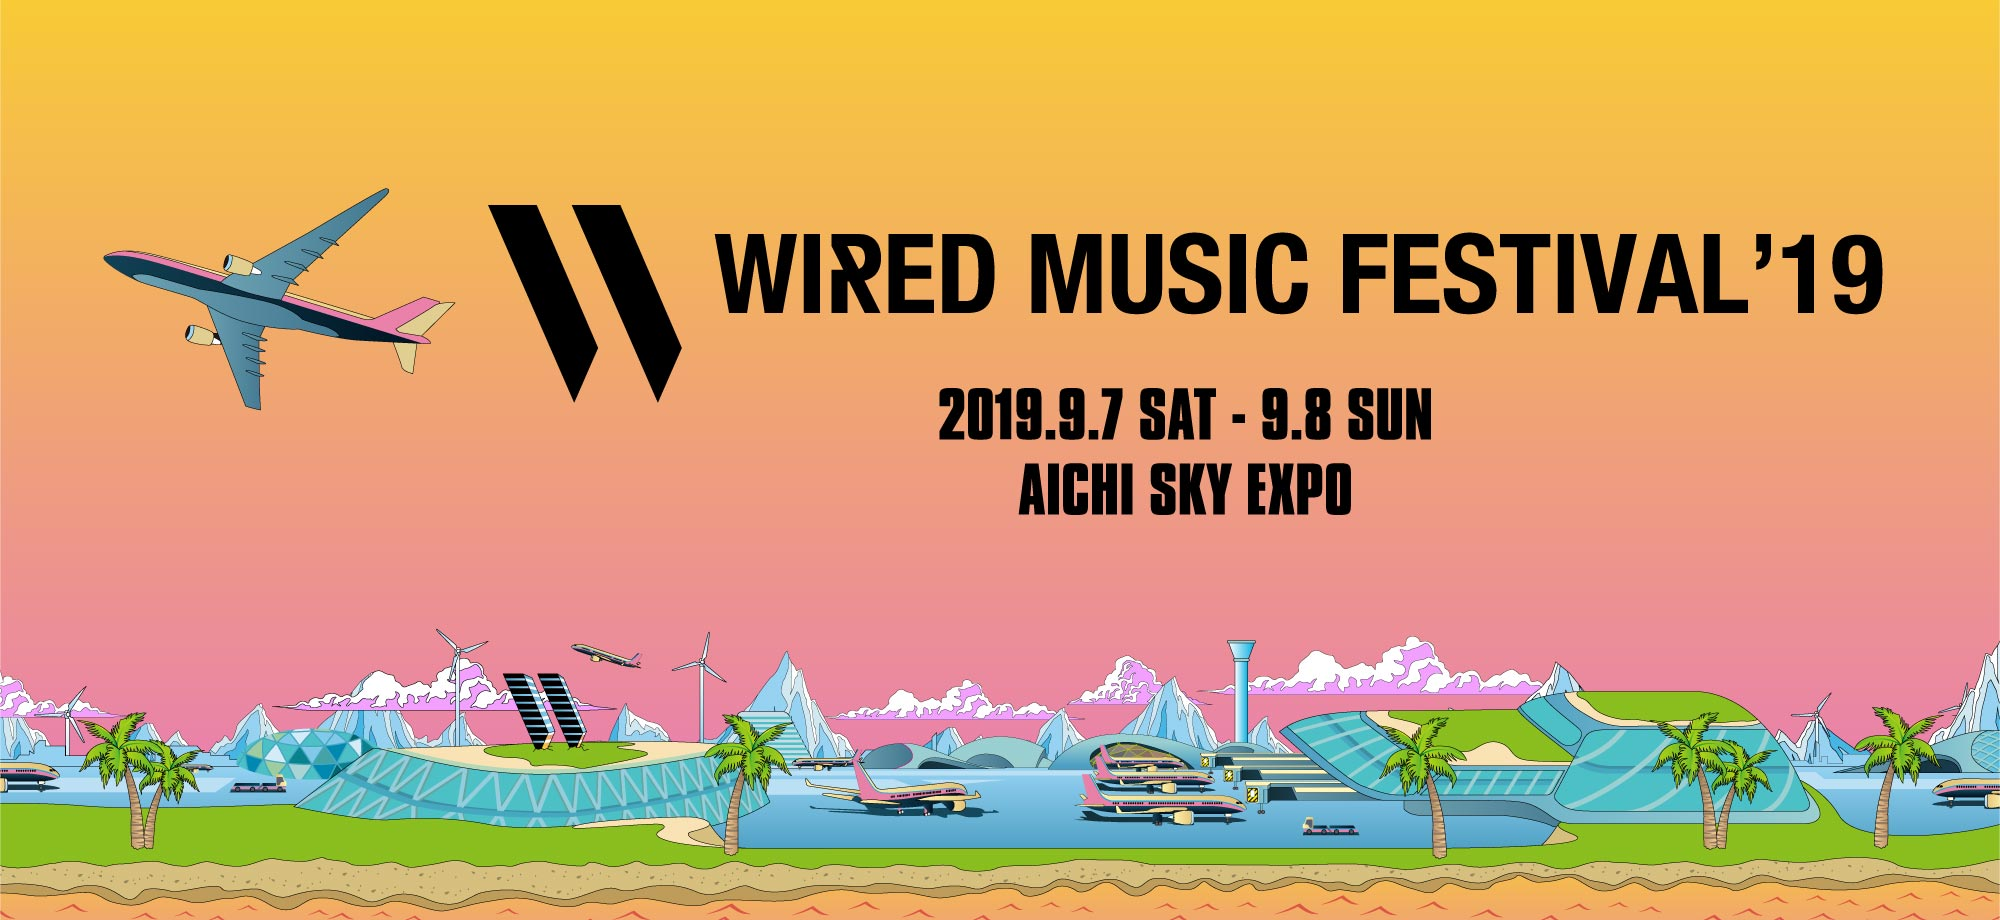 WIRED_MUSIC_FESTIVAL_2019_PAGE_2000_920